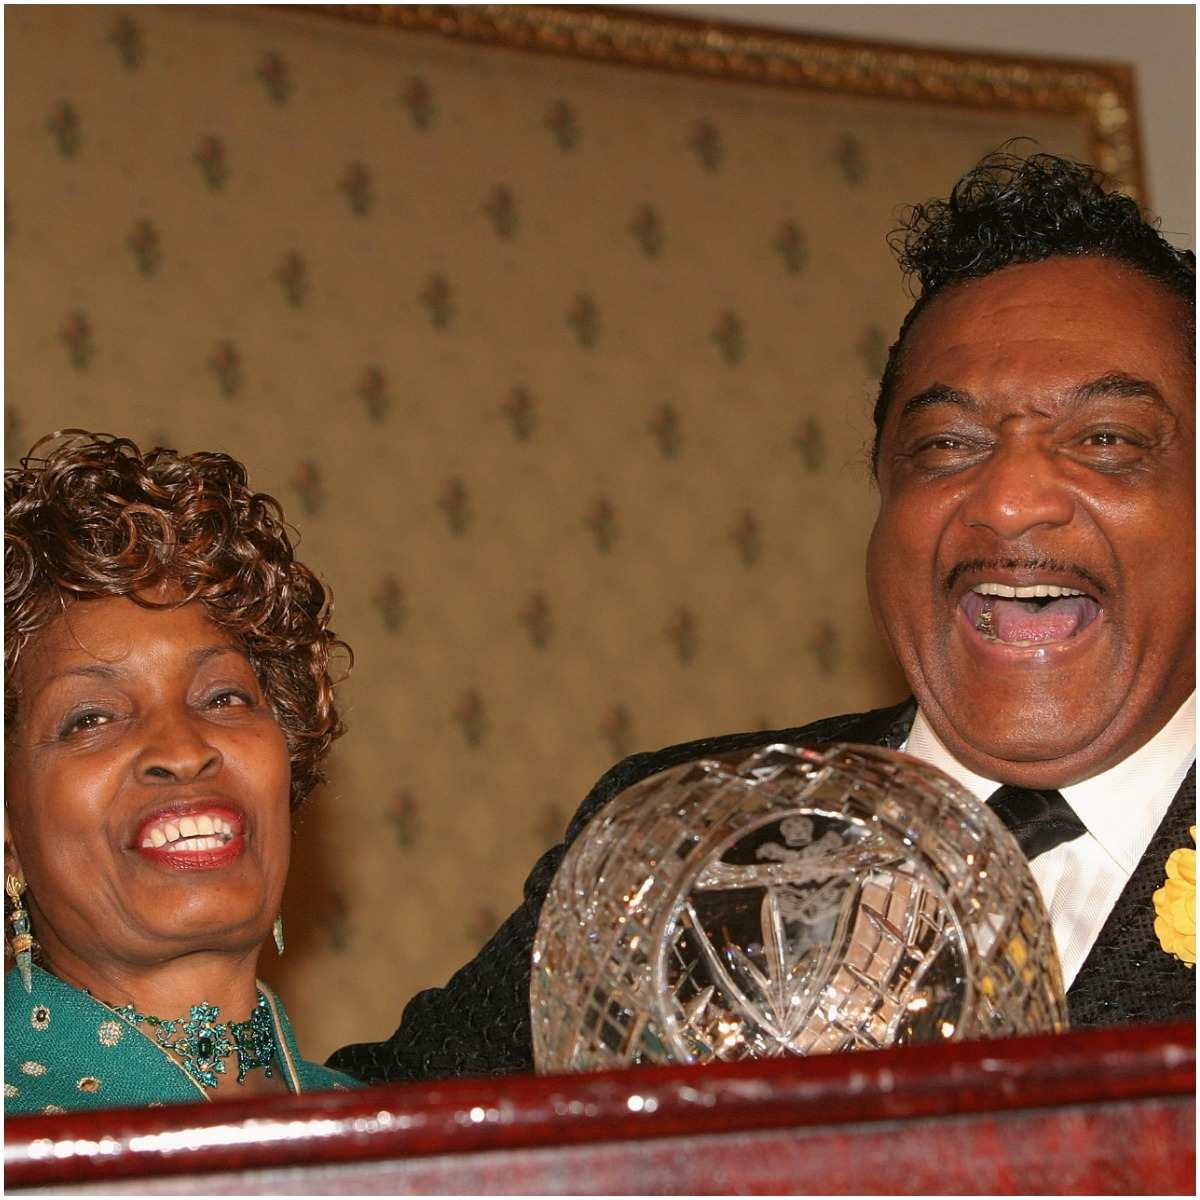 Reverend Ike and his wife Eula M. Dent